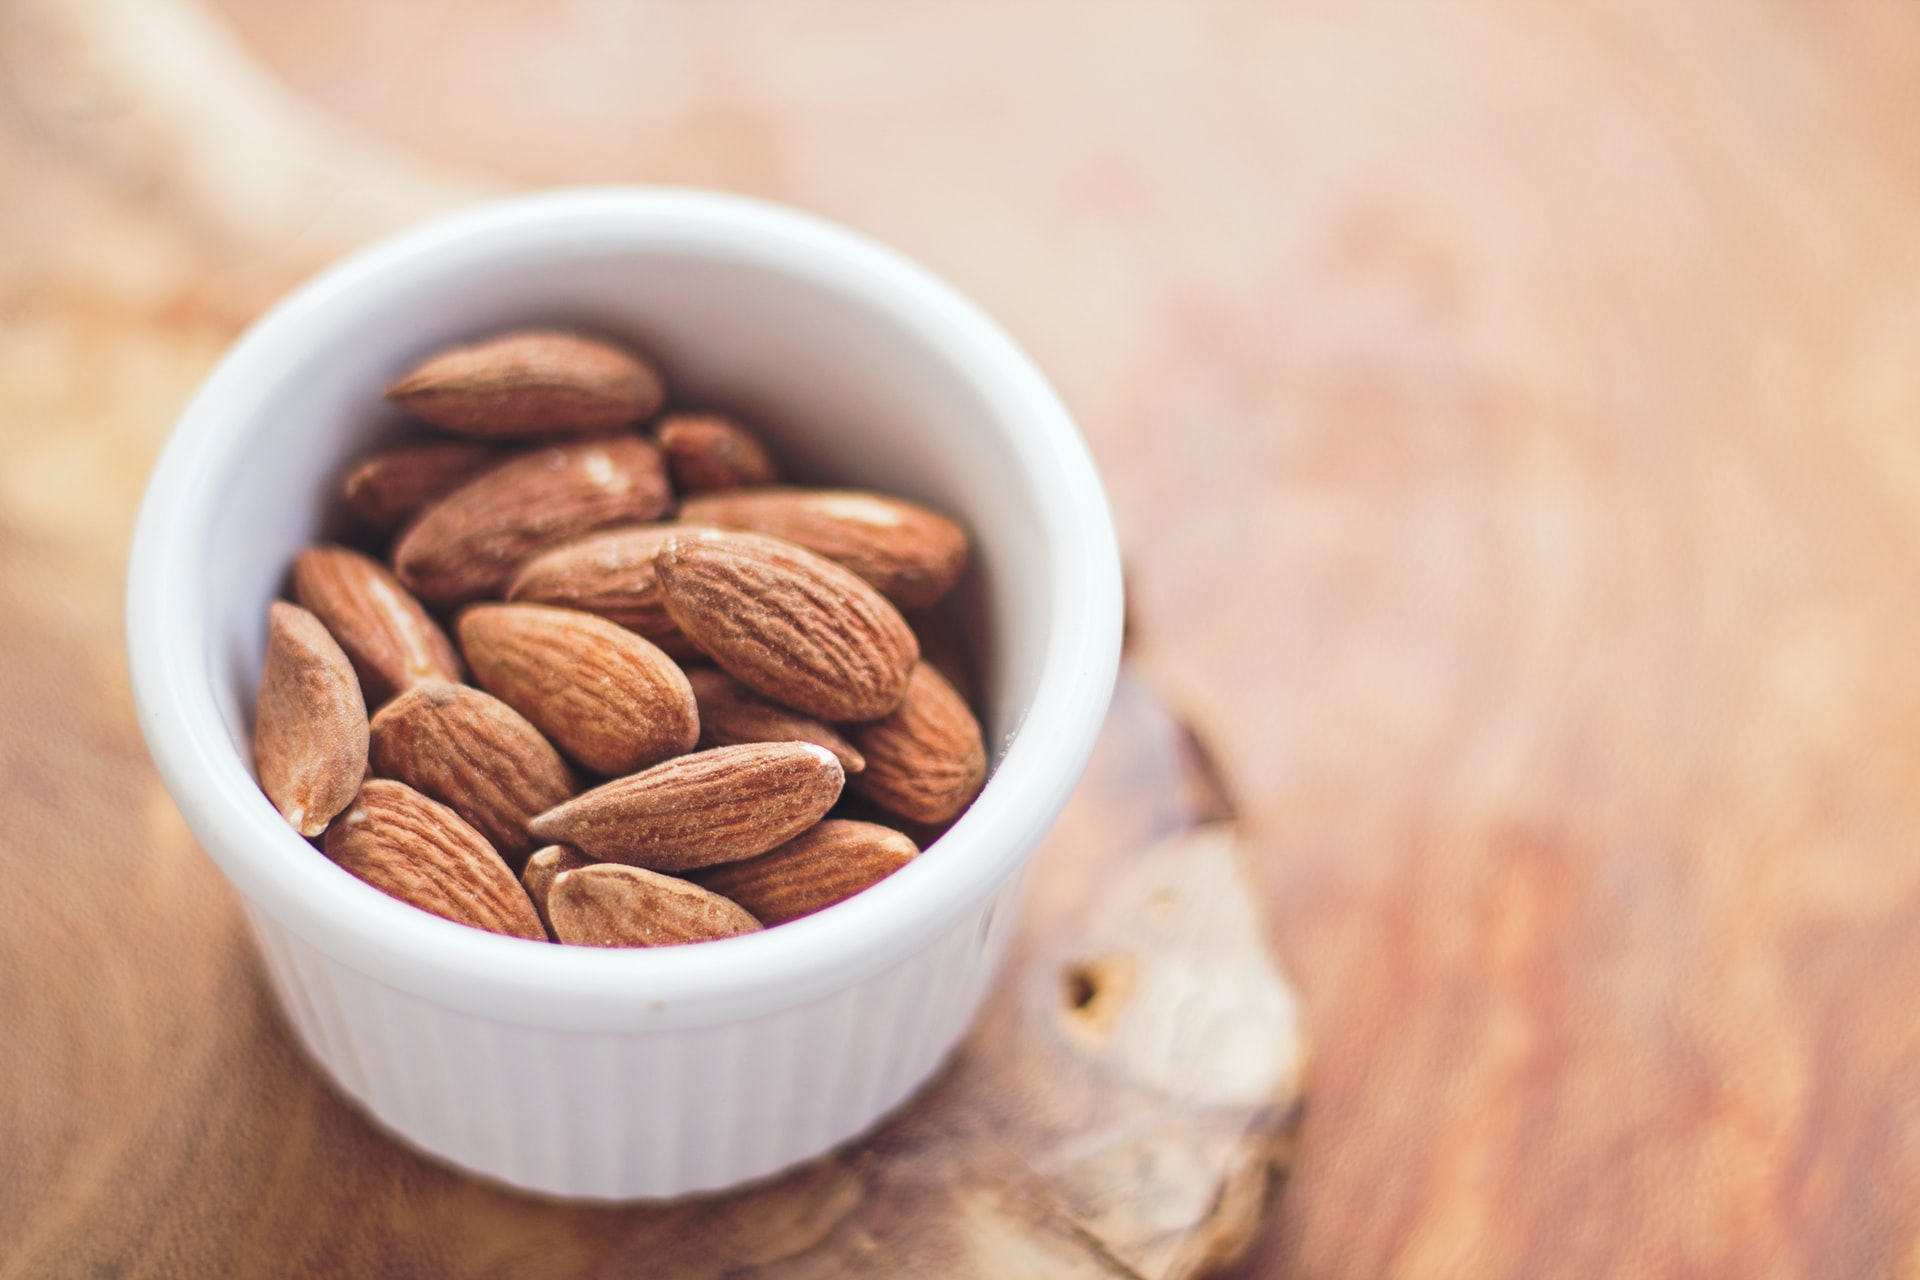 Healthy bowl of almonds to encourage nutritional eating